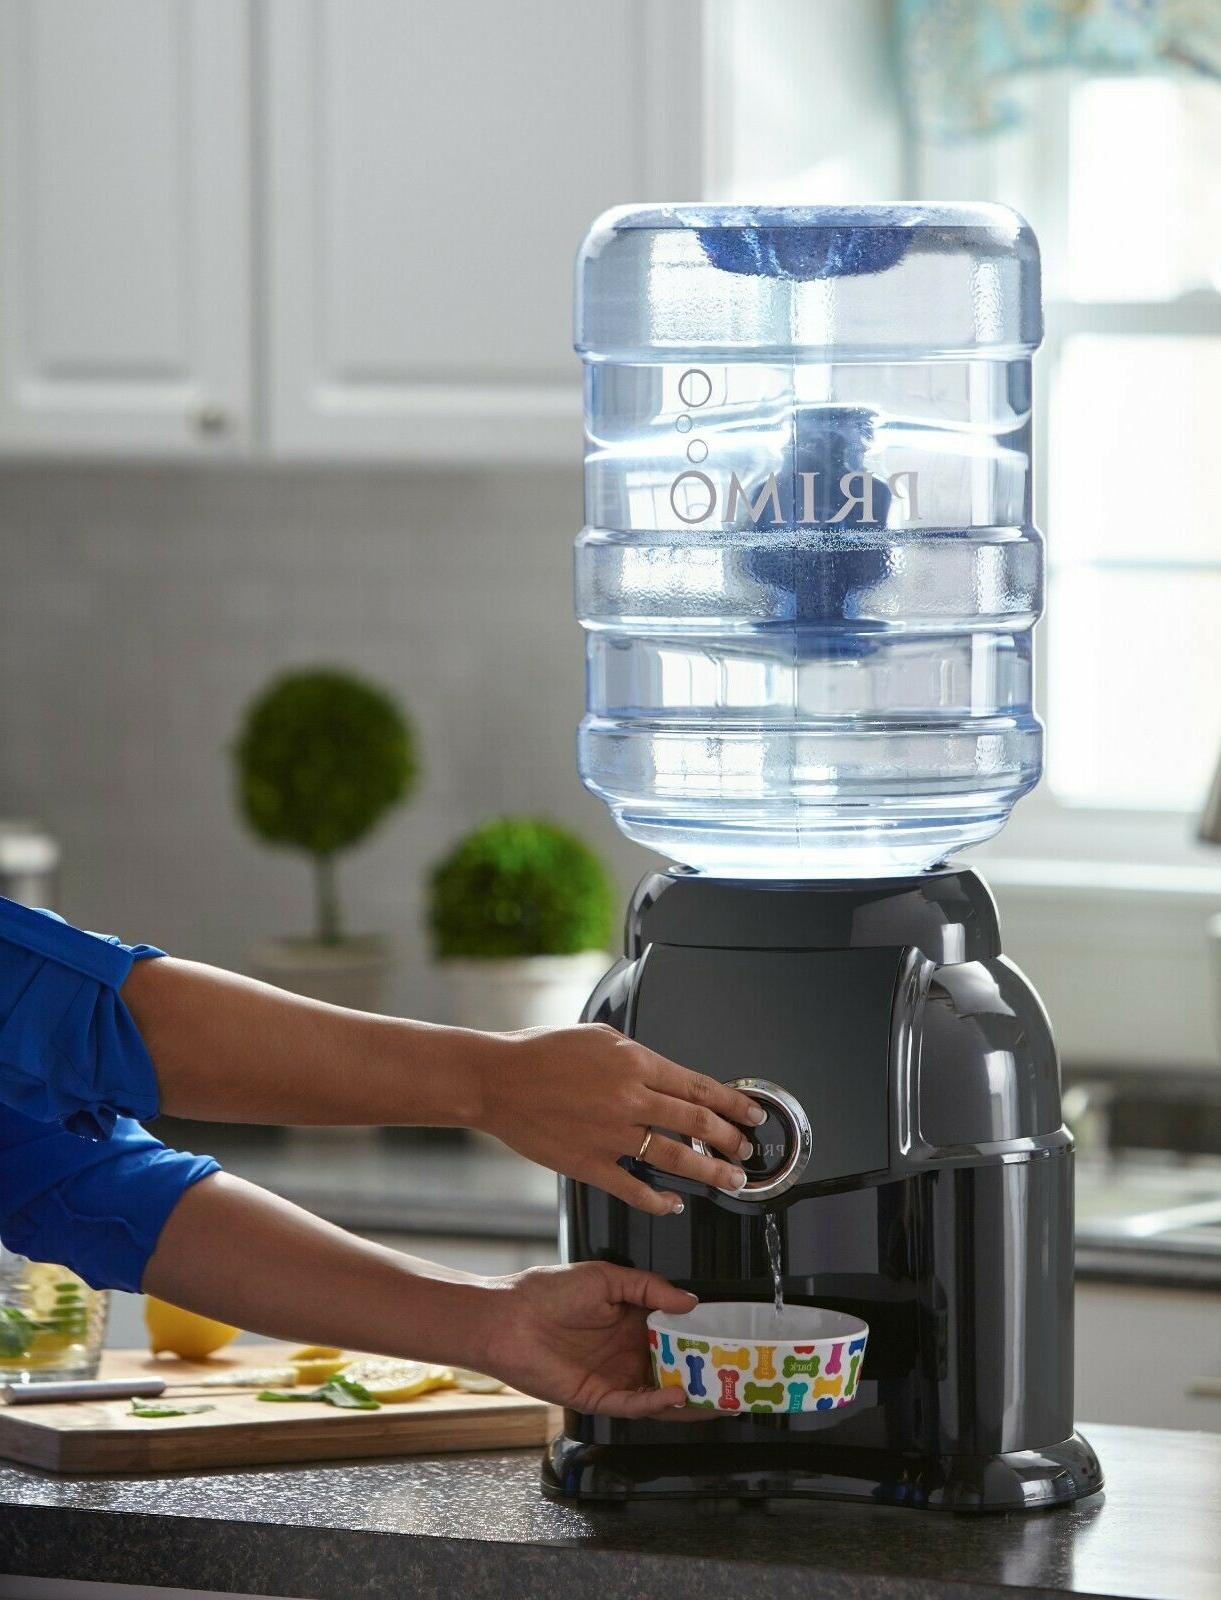 Water Dispenser Counter Coolers Jugs Home Kitchen New